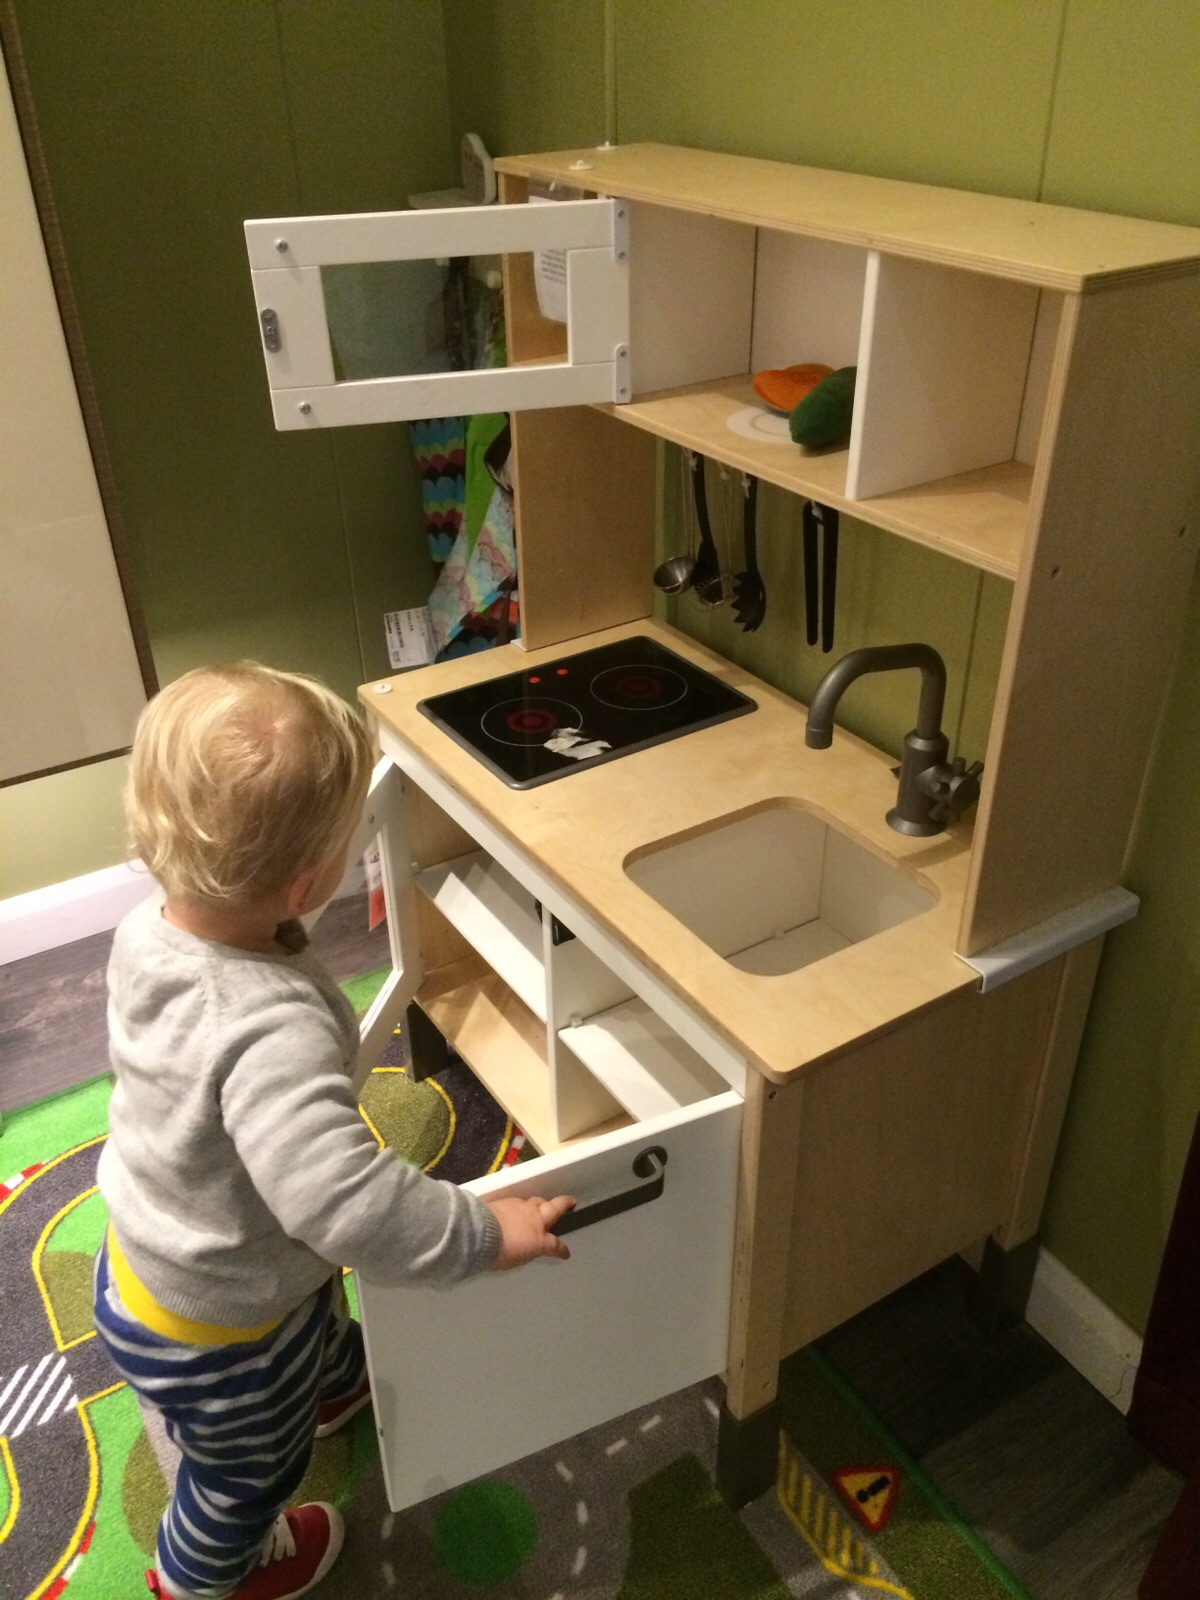 Toddler playing at cooking